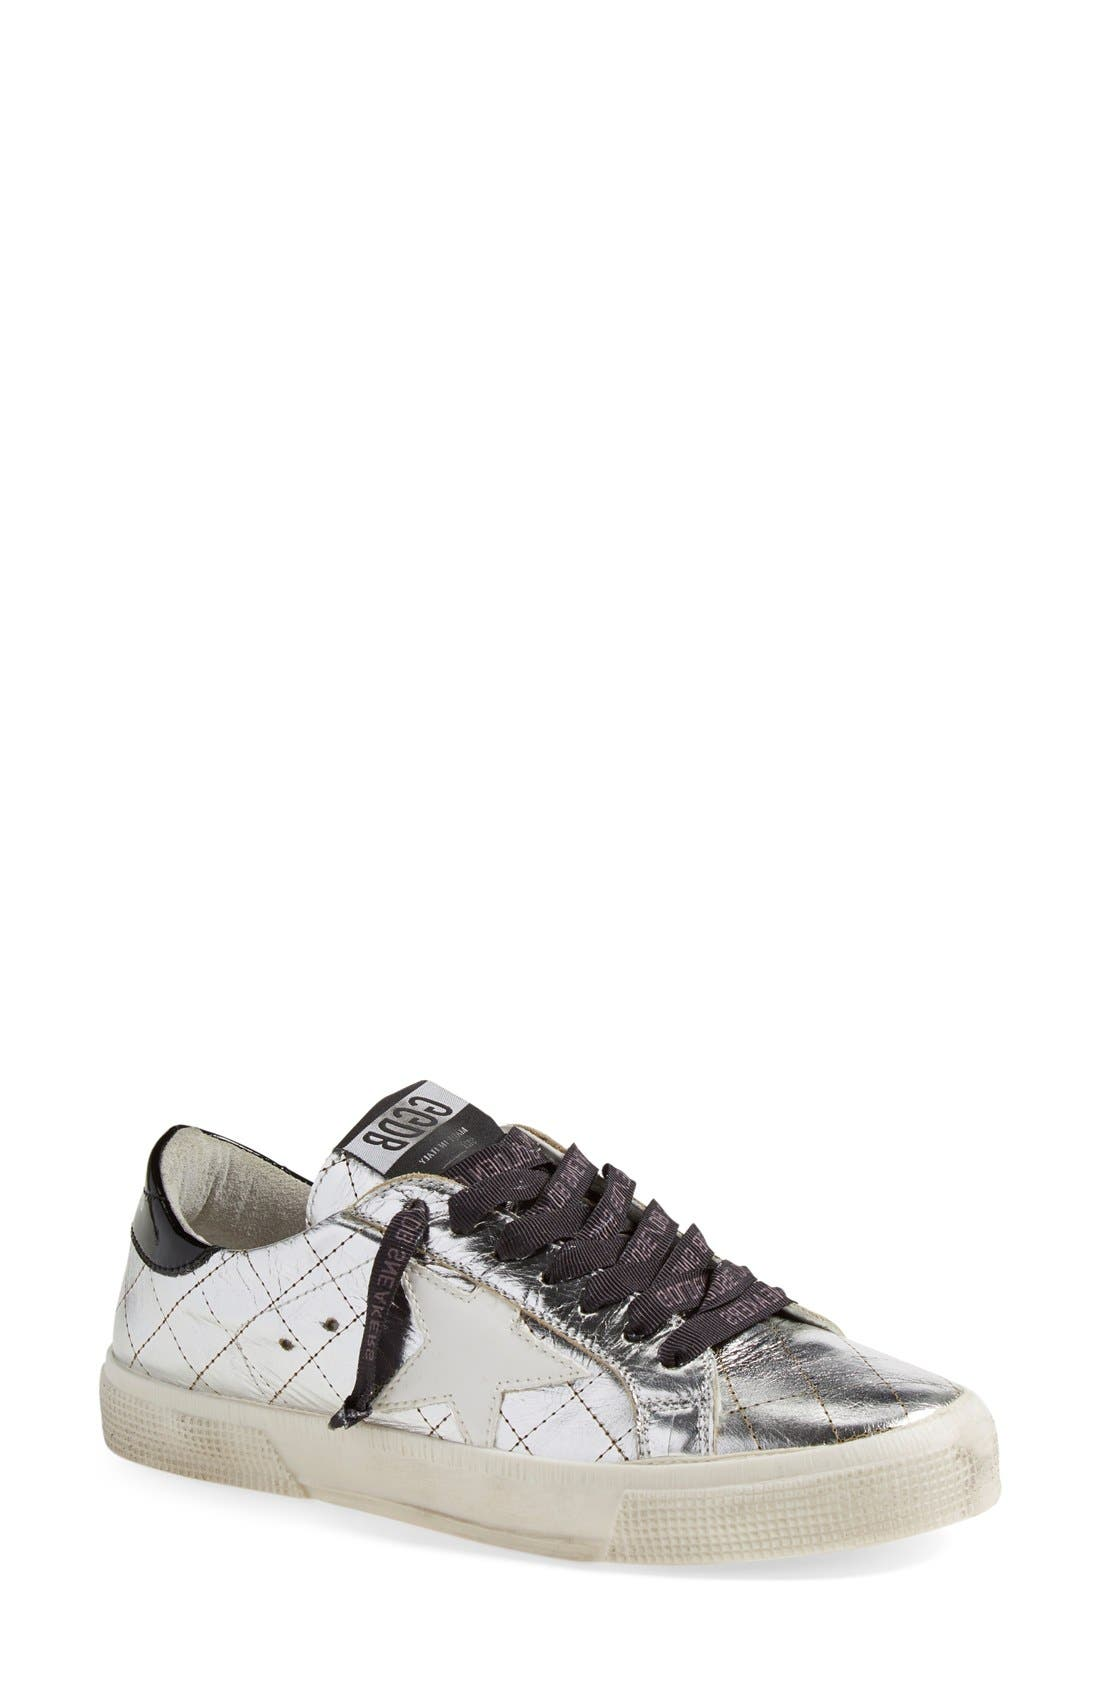 Alternate Image 1 Selected - Golden Goose 'May' Low Top Sneaker (Women)